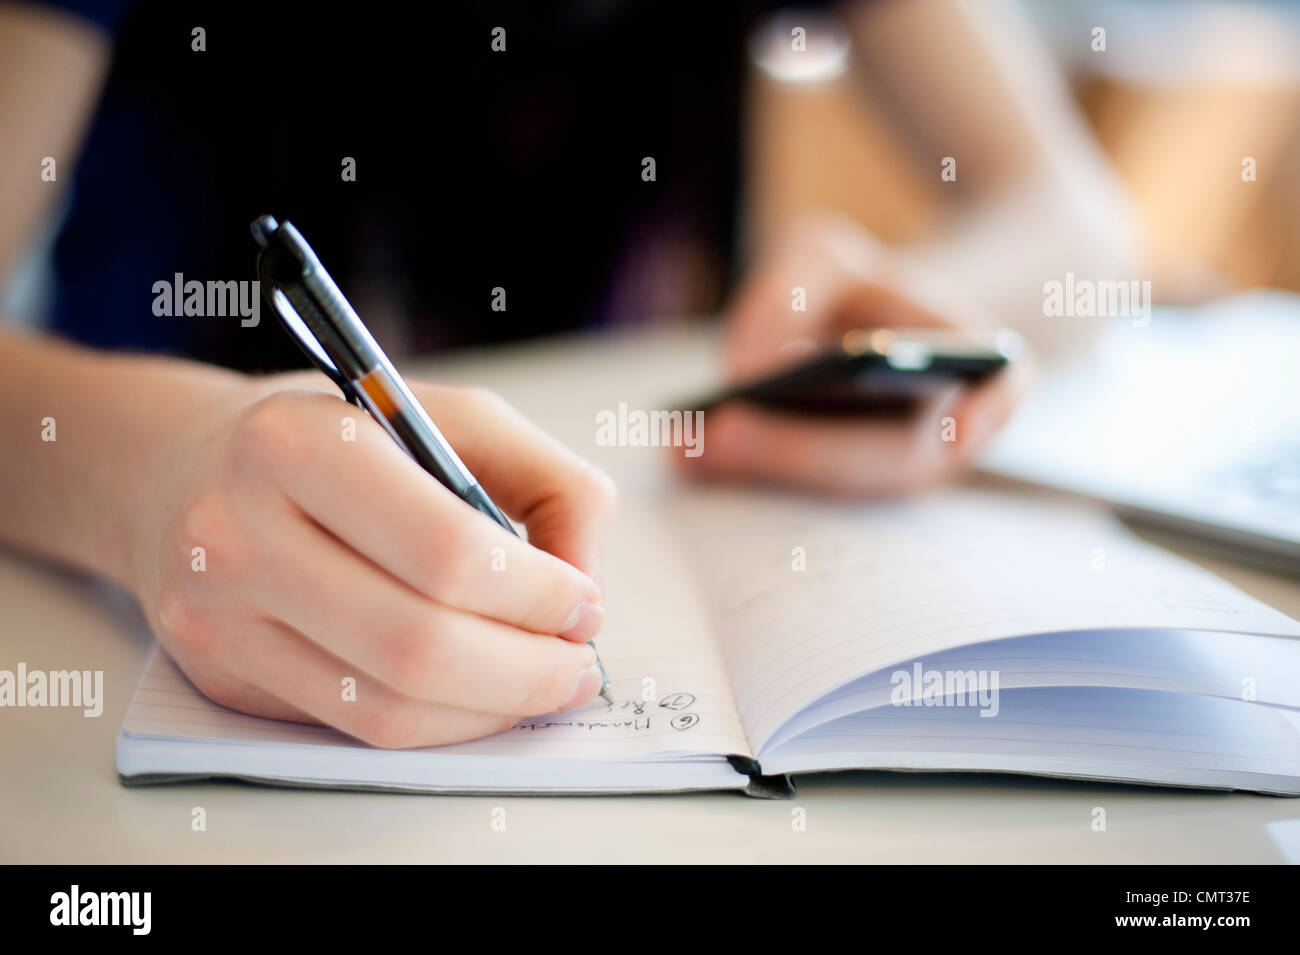 Close-up of human hand writing and holding mobile phone - Stock Image